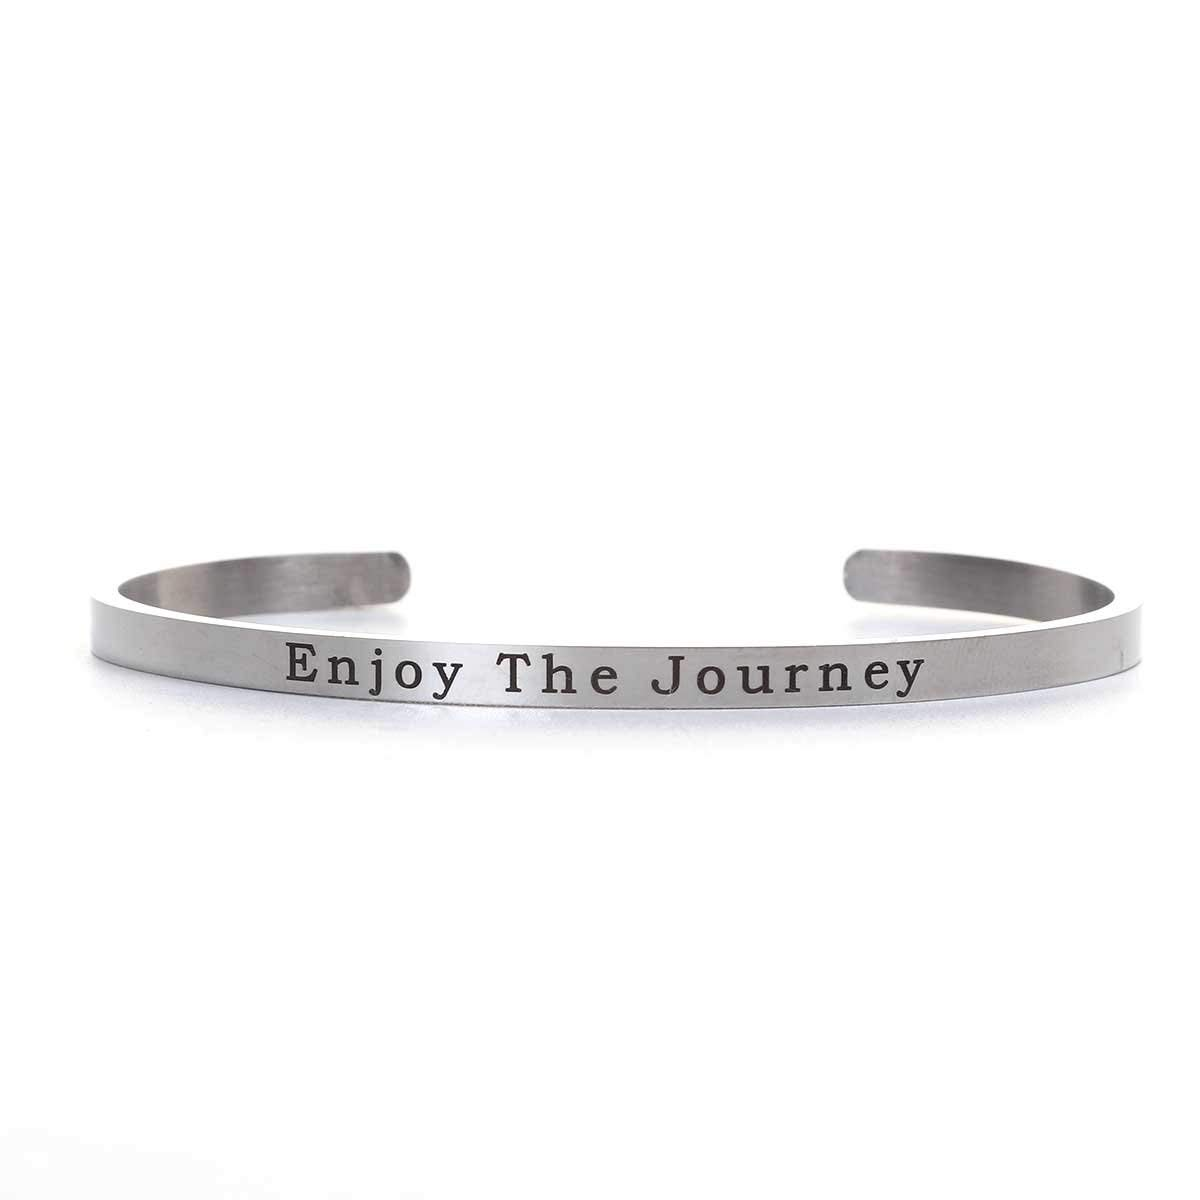 SEXY SPARKLES Stainless Steel Enjoy The Journey Positive Quotes Energy Open Cuff Bangle Bracelet